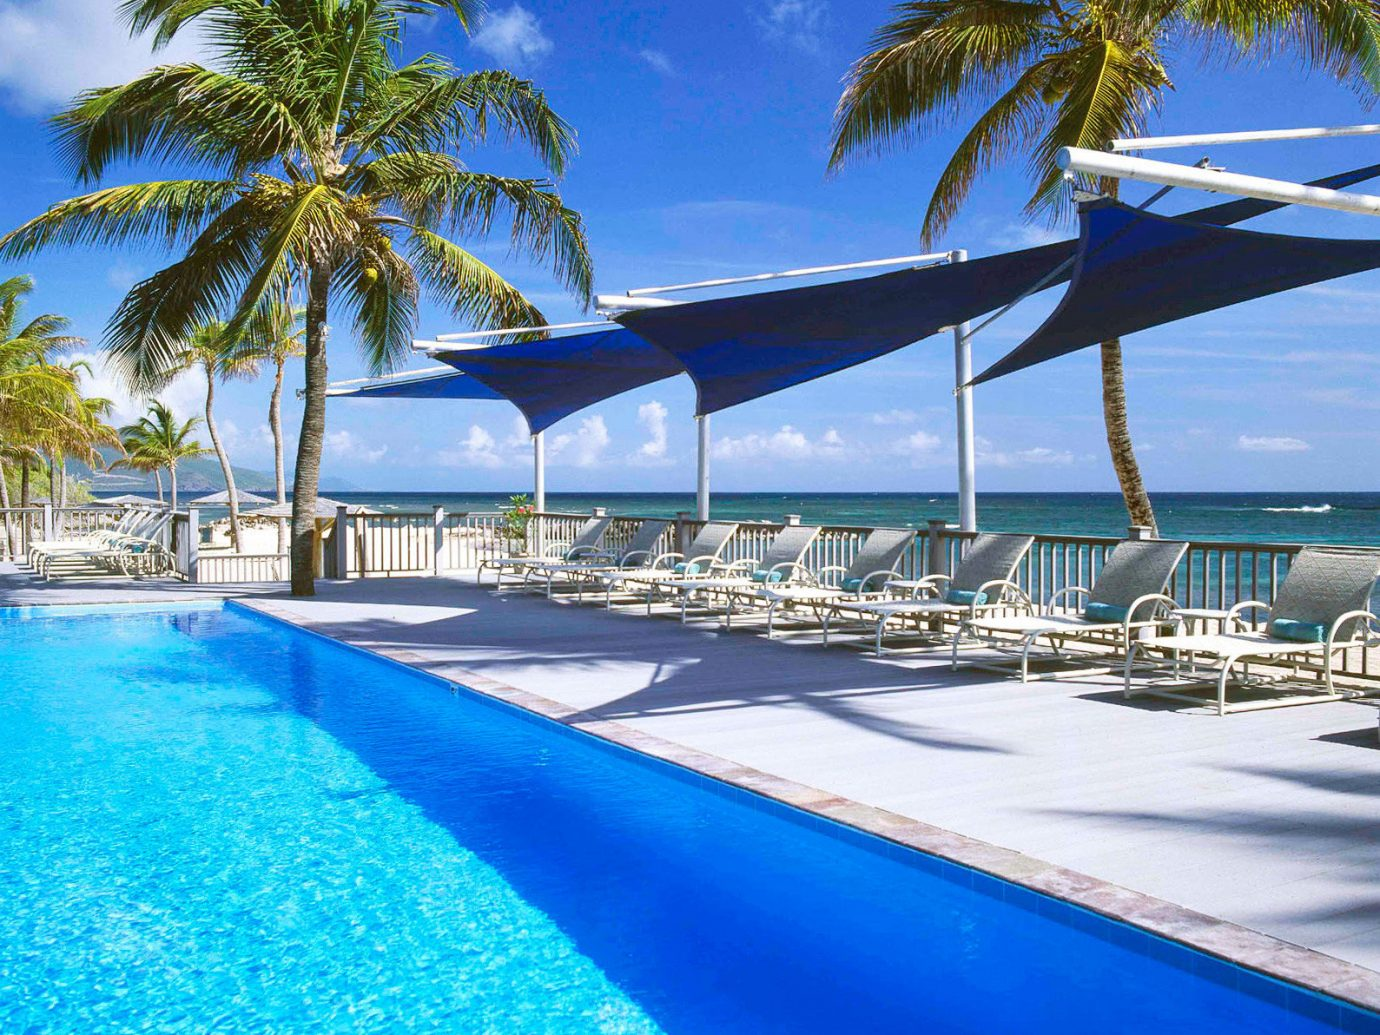 Beachfront Hip Lounge Luxury Tropical tree sky water umbrella Pool palm swimming pool leisure Beach property Resort caribbean lawn condominium marina blue Sea Ocean Lagoon lined resort town arecales swimming Villa Water park atoll shade shore